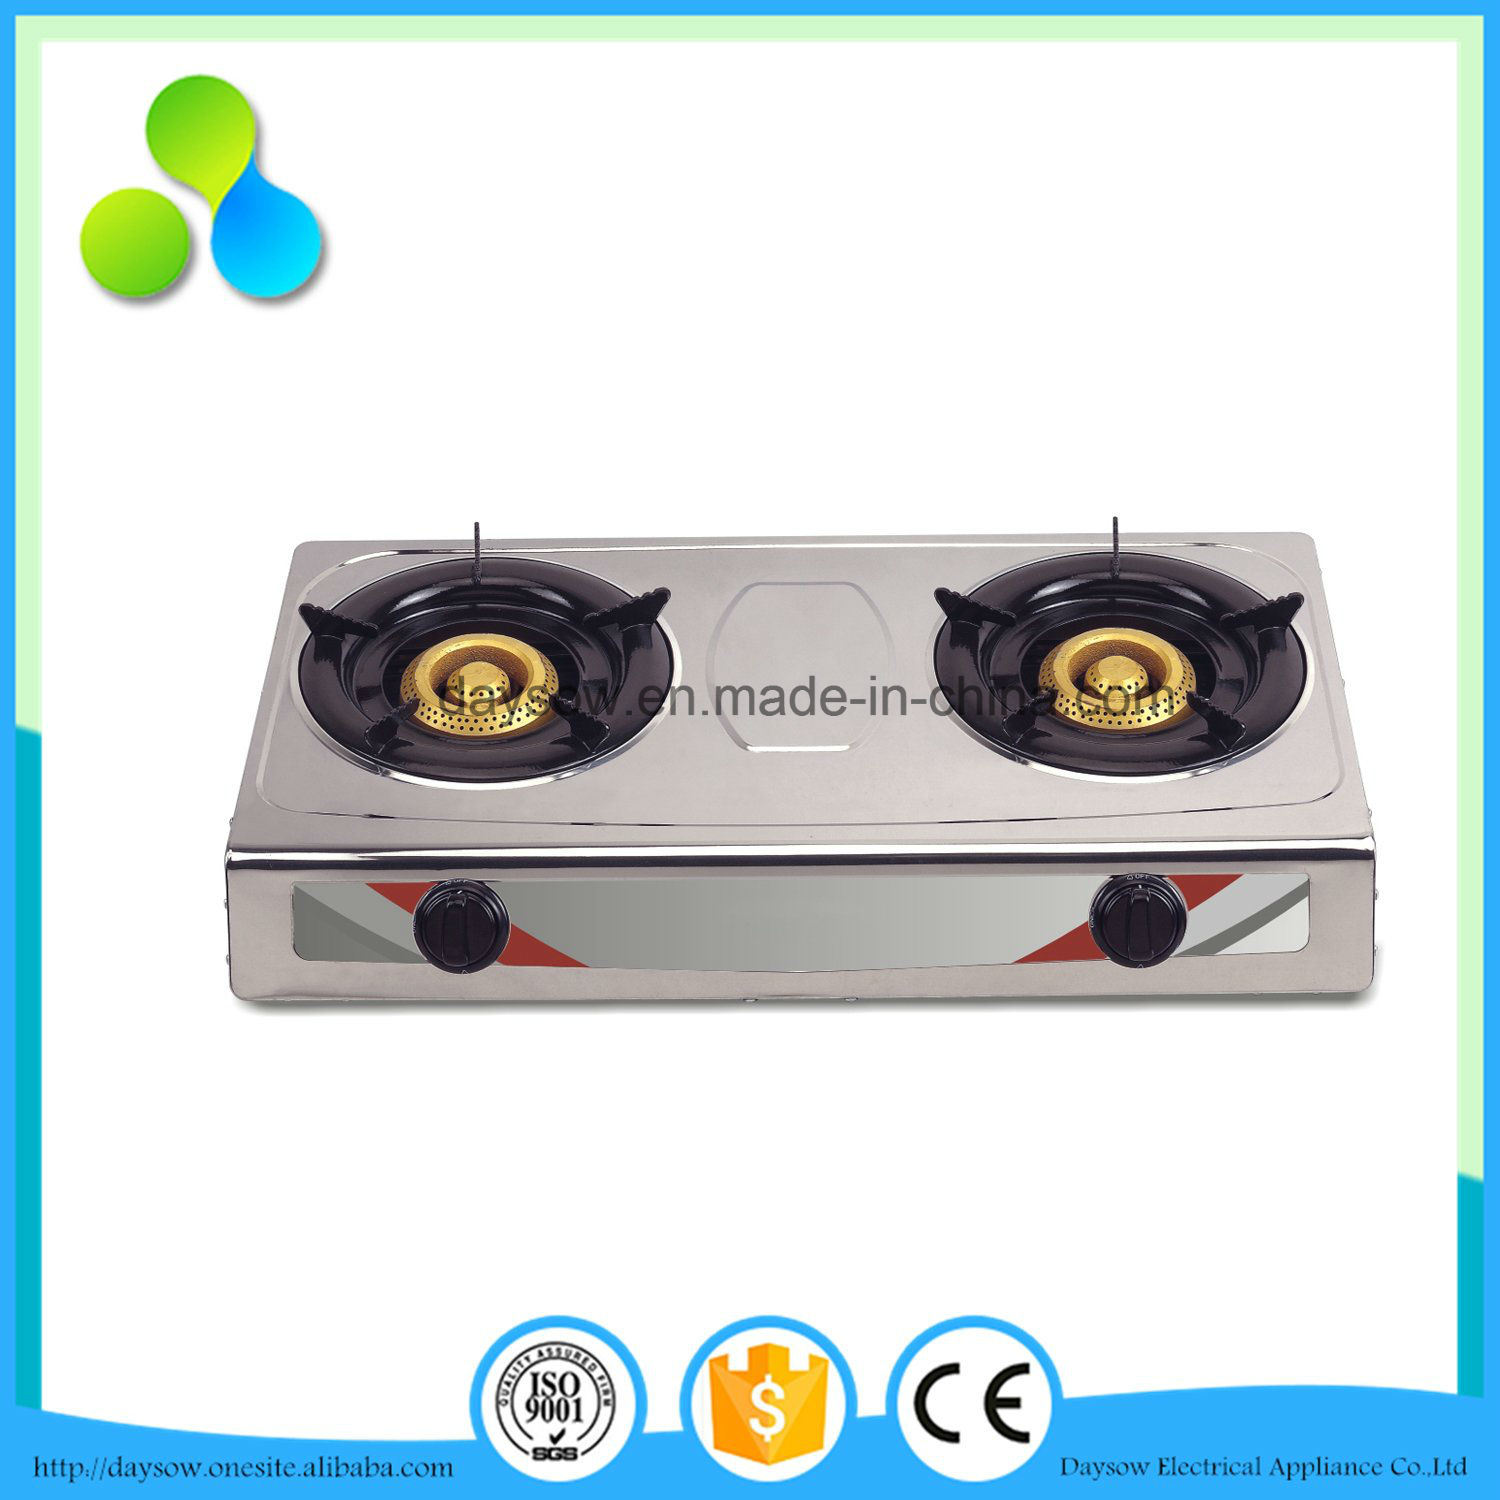 Bangladesh Market Hot Selling Gas Burner Stove